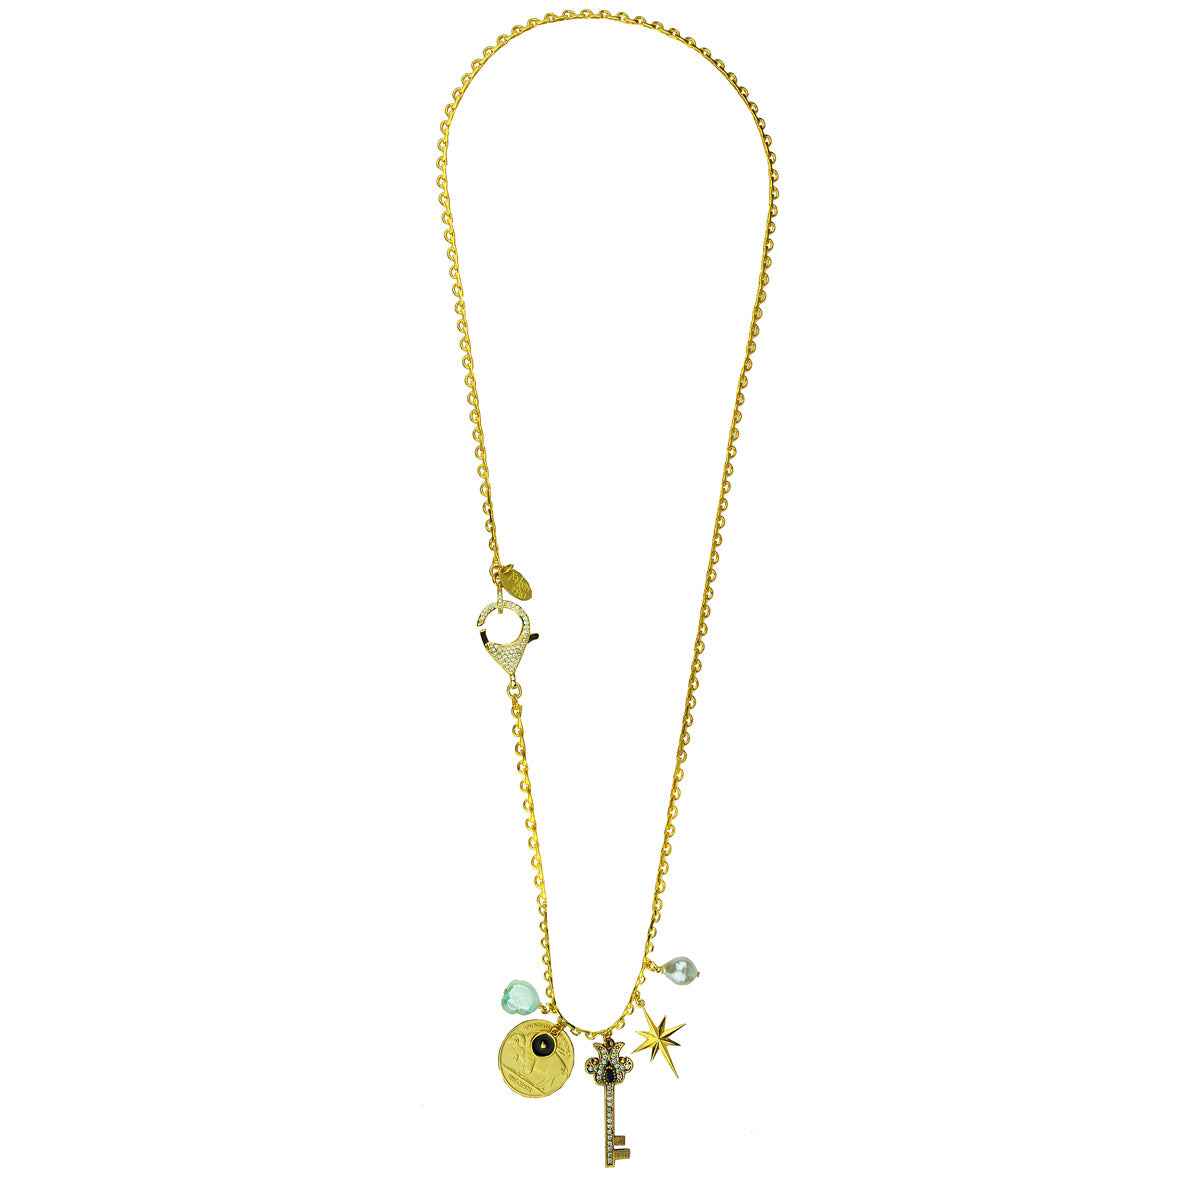 gold platedbrass chain necklace with charms and a crystal key adornment katerina psoma